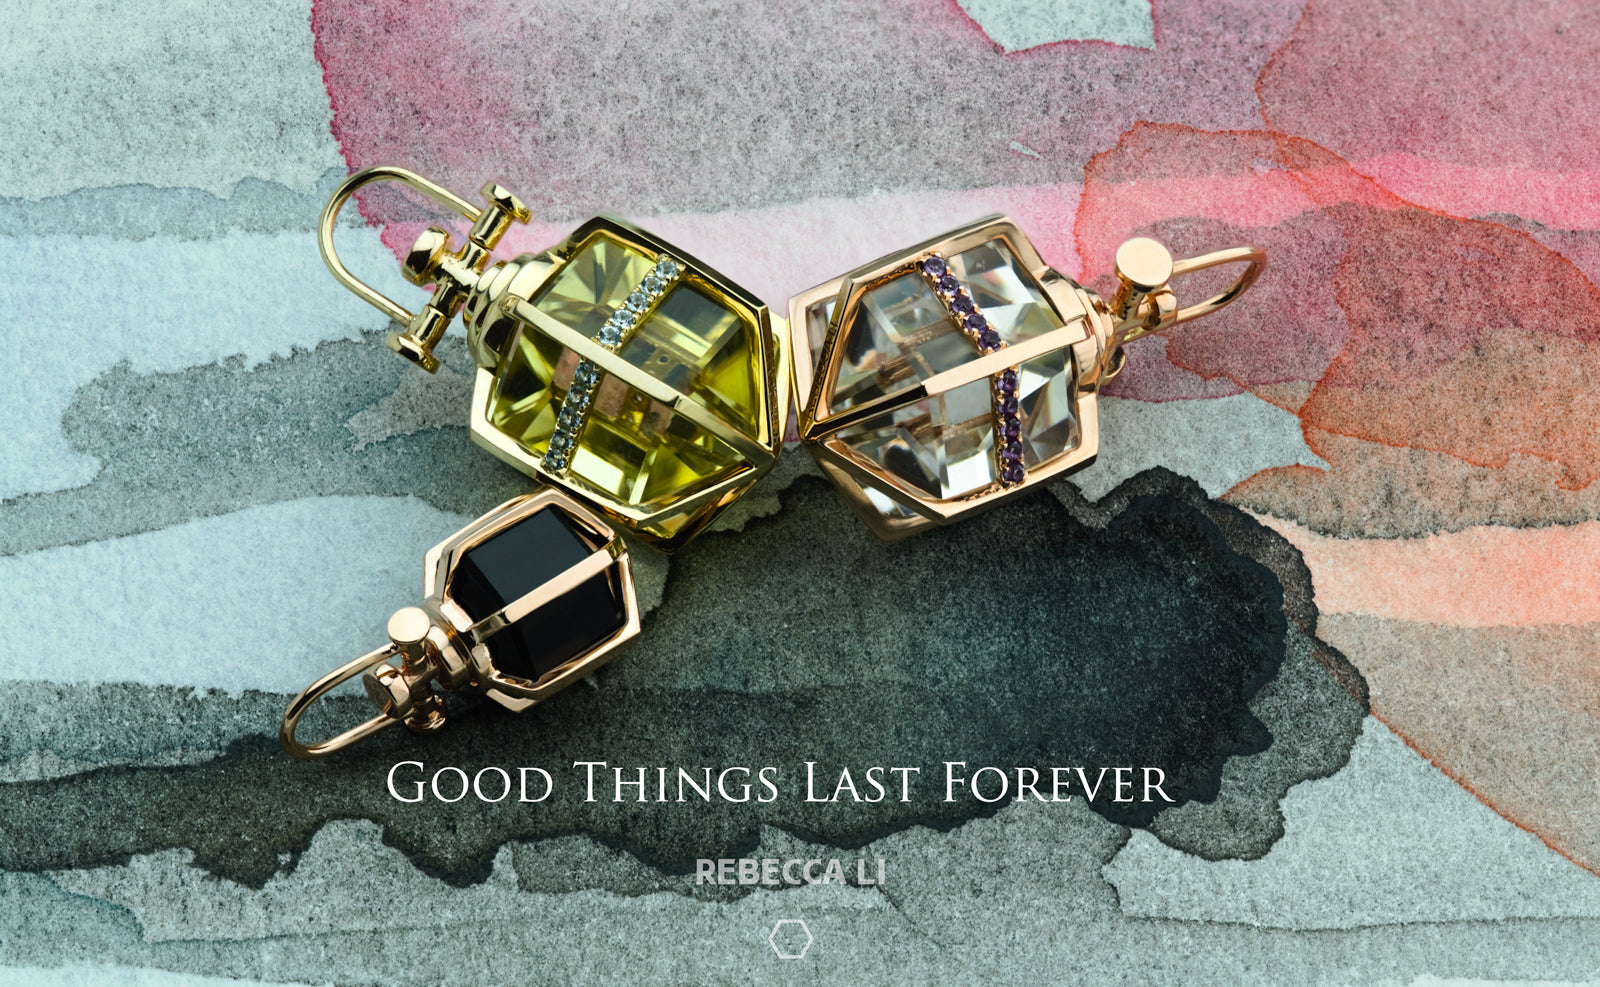 Rebecca Li Good Things Last Forever